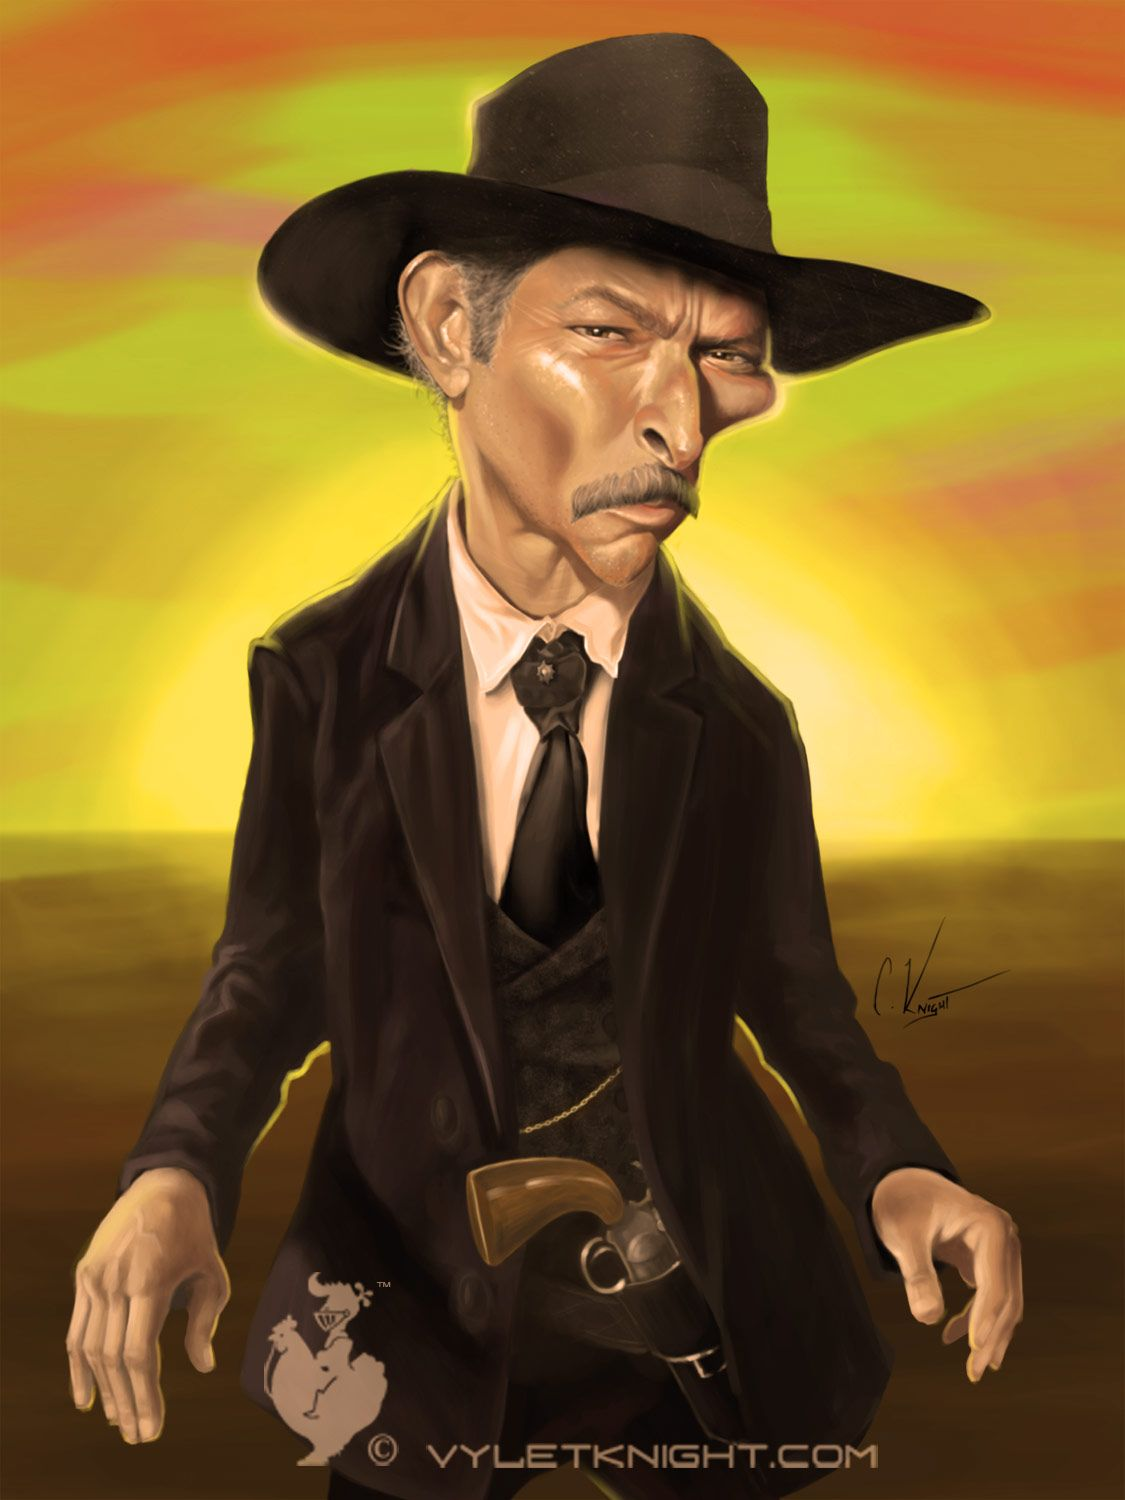 Colonel Mortimer (Lee Van Cleef) prêt à faire feu | Caricature et ...